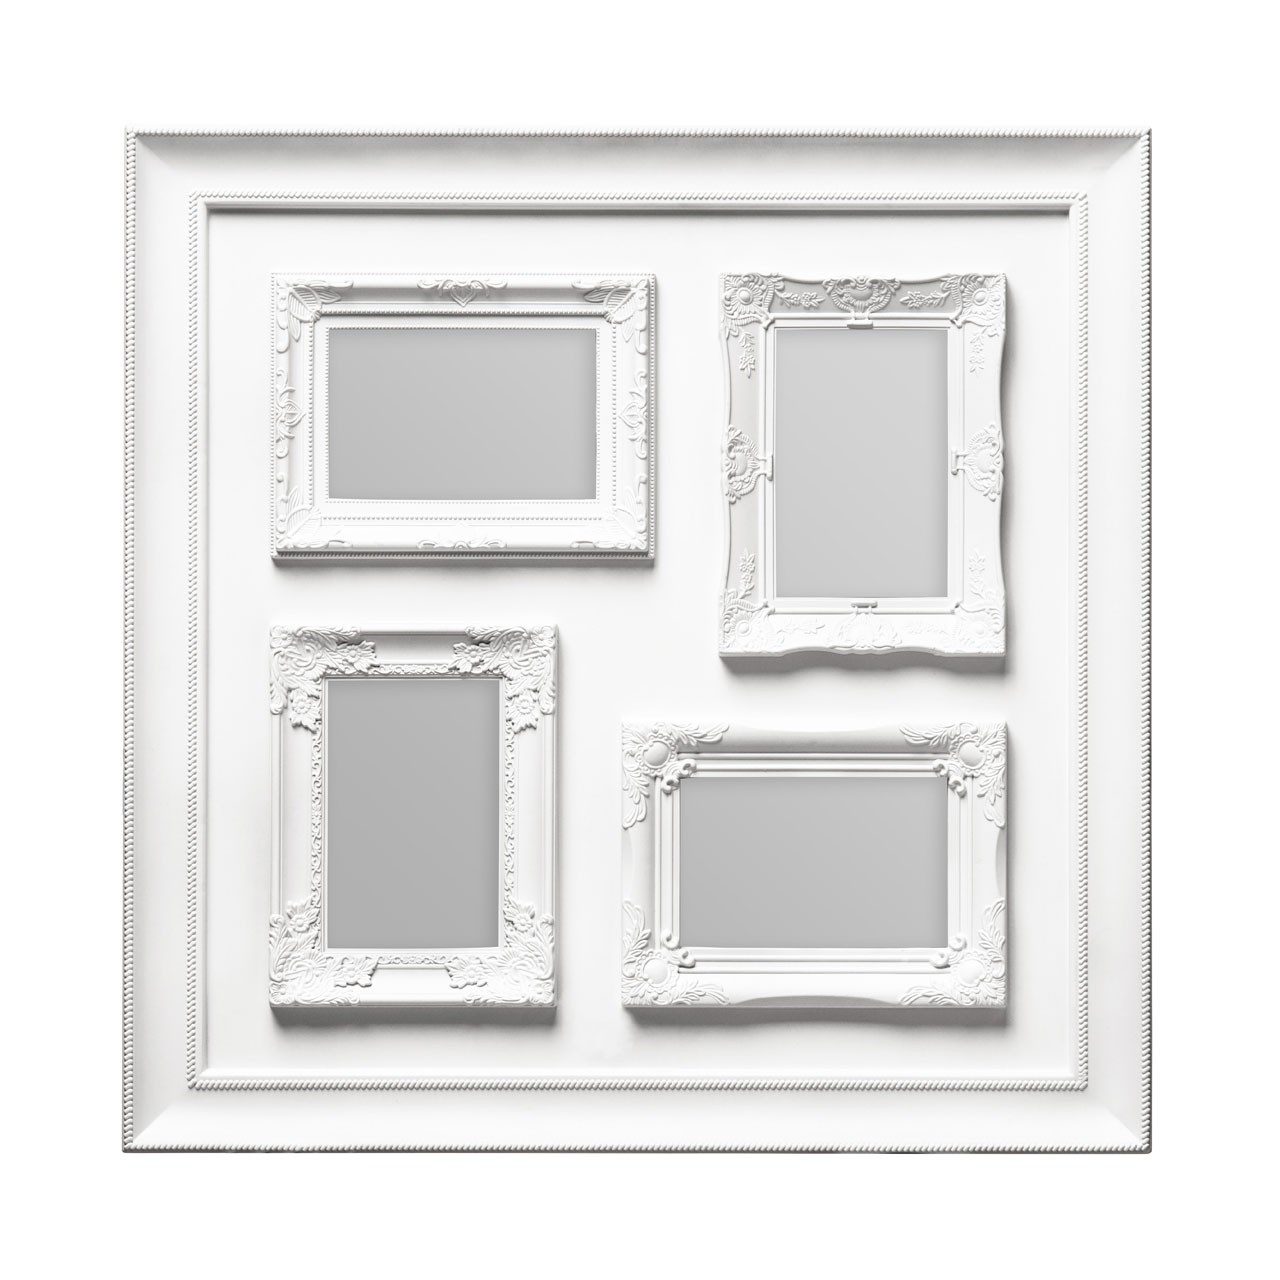 "Prime Furnishing 4 Photos Plastic Photo Frame, 4 x 6"" - White"